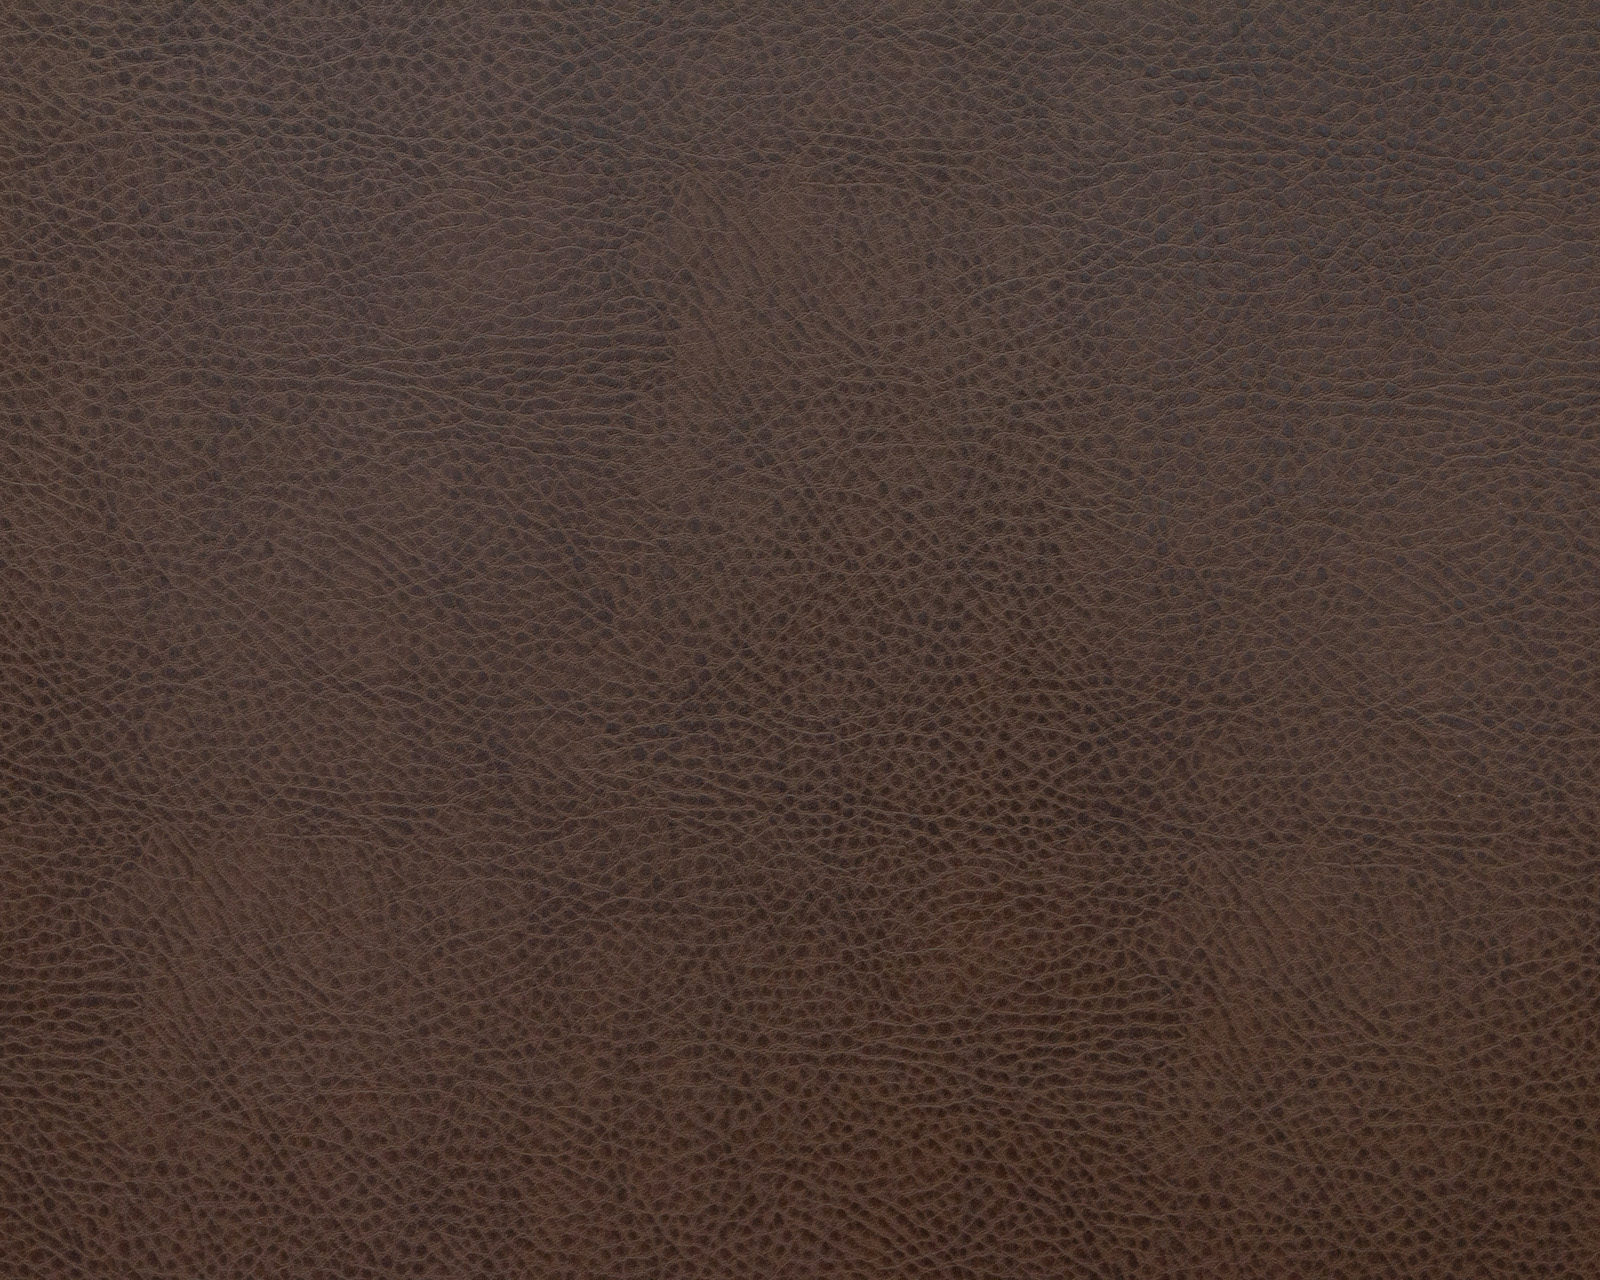 Teos dark brown